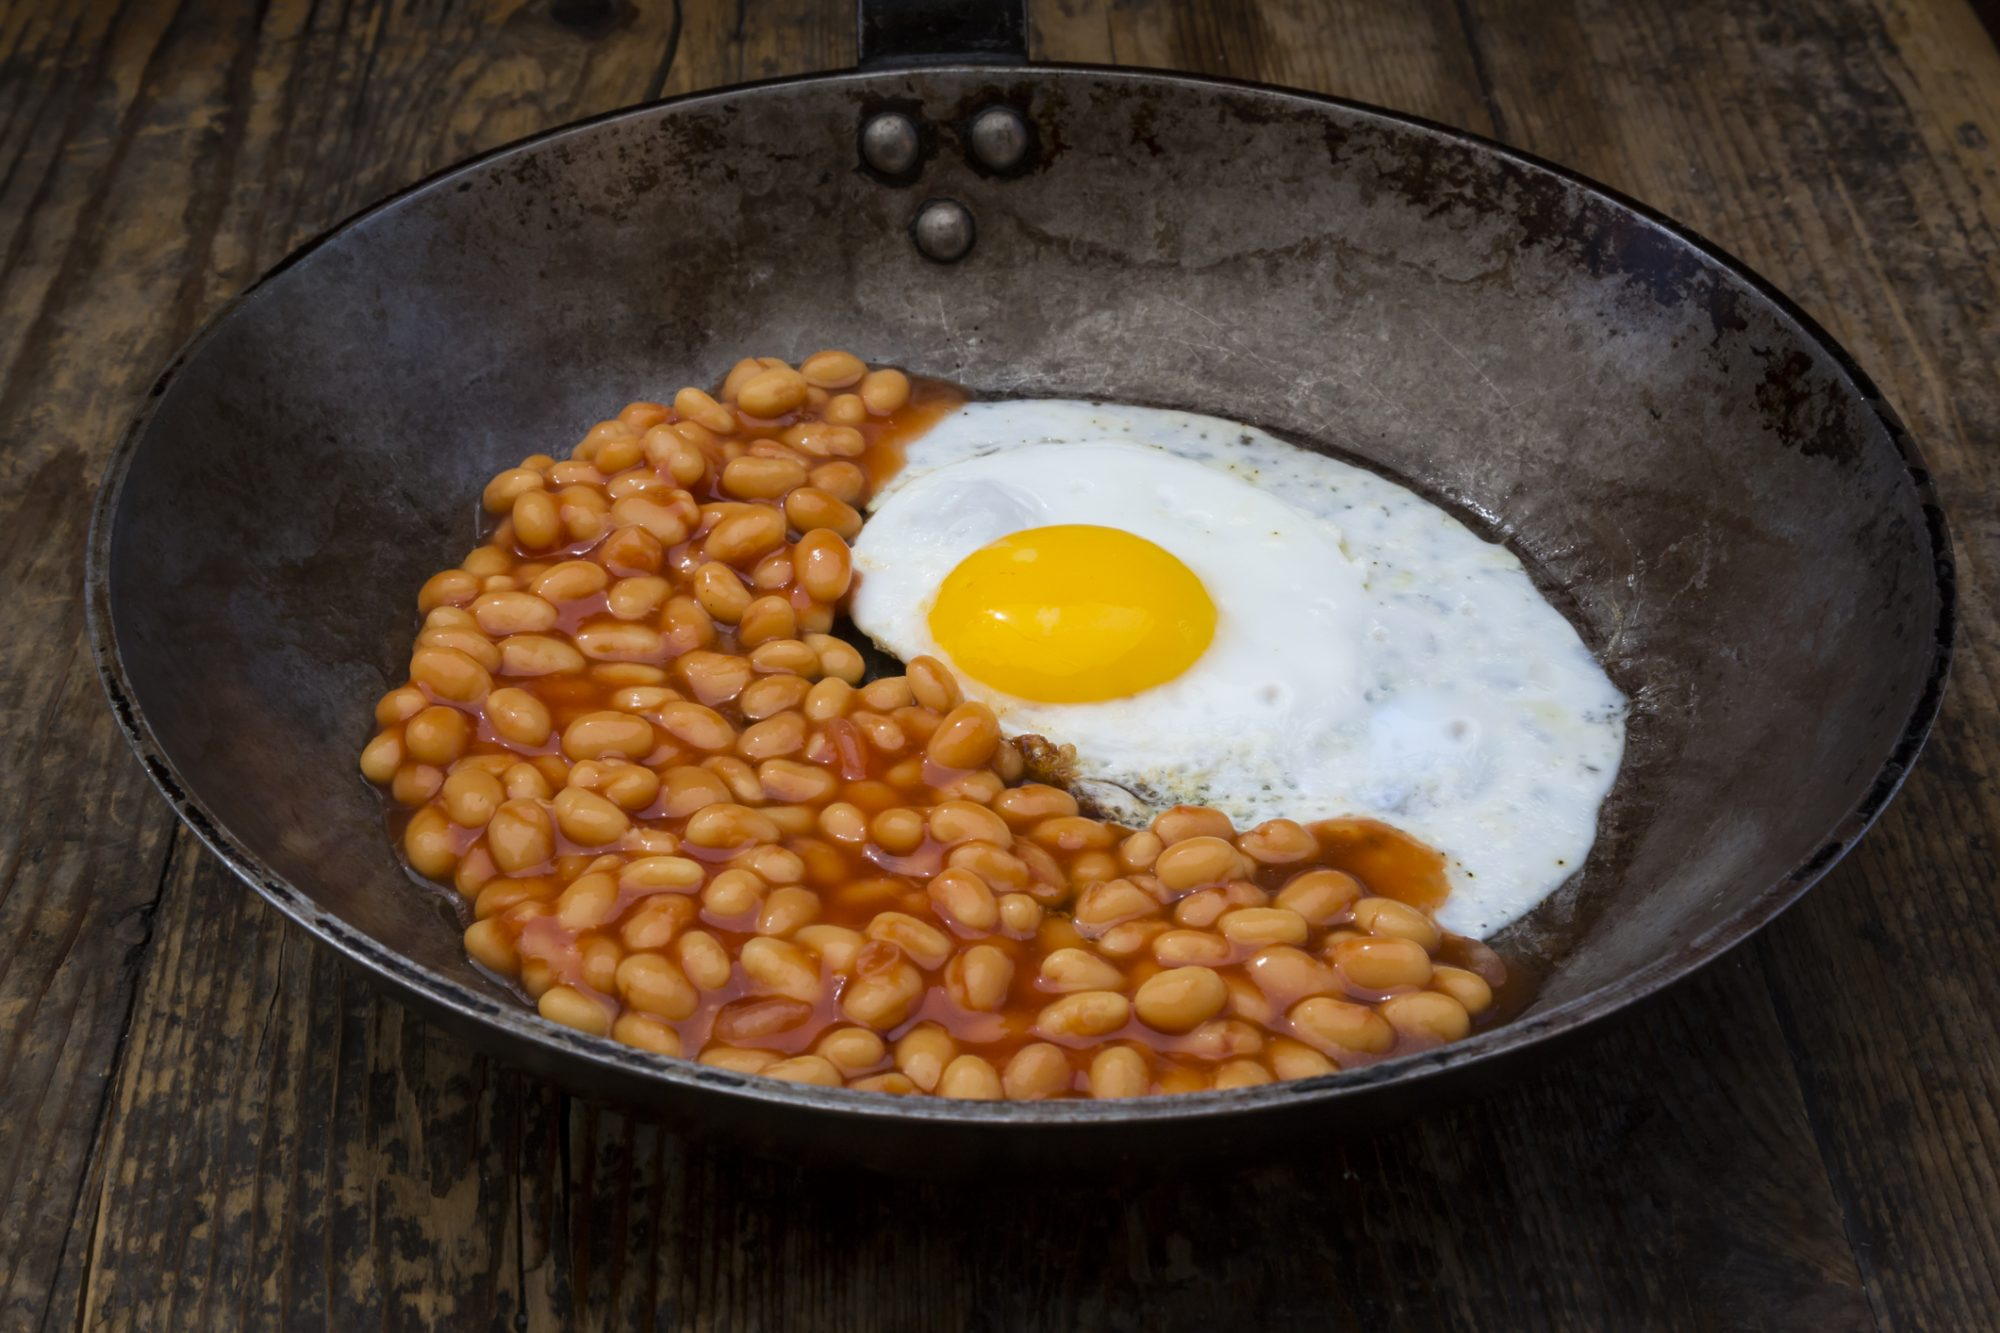 Fried egg and baked beans in frying pan on wood